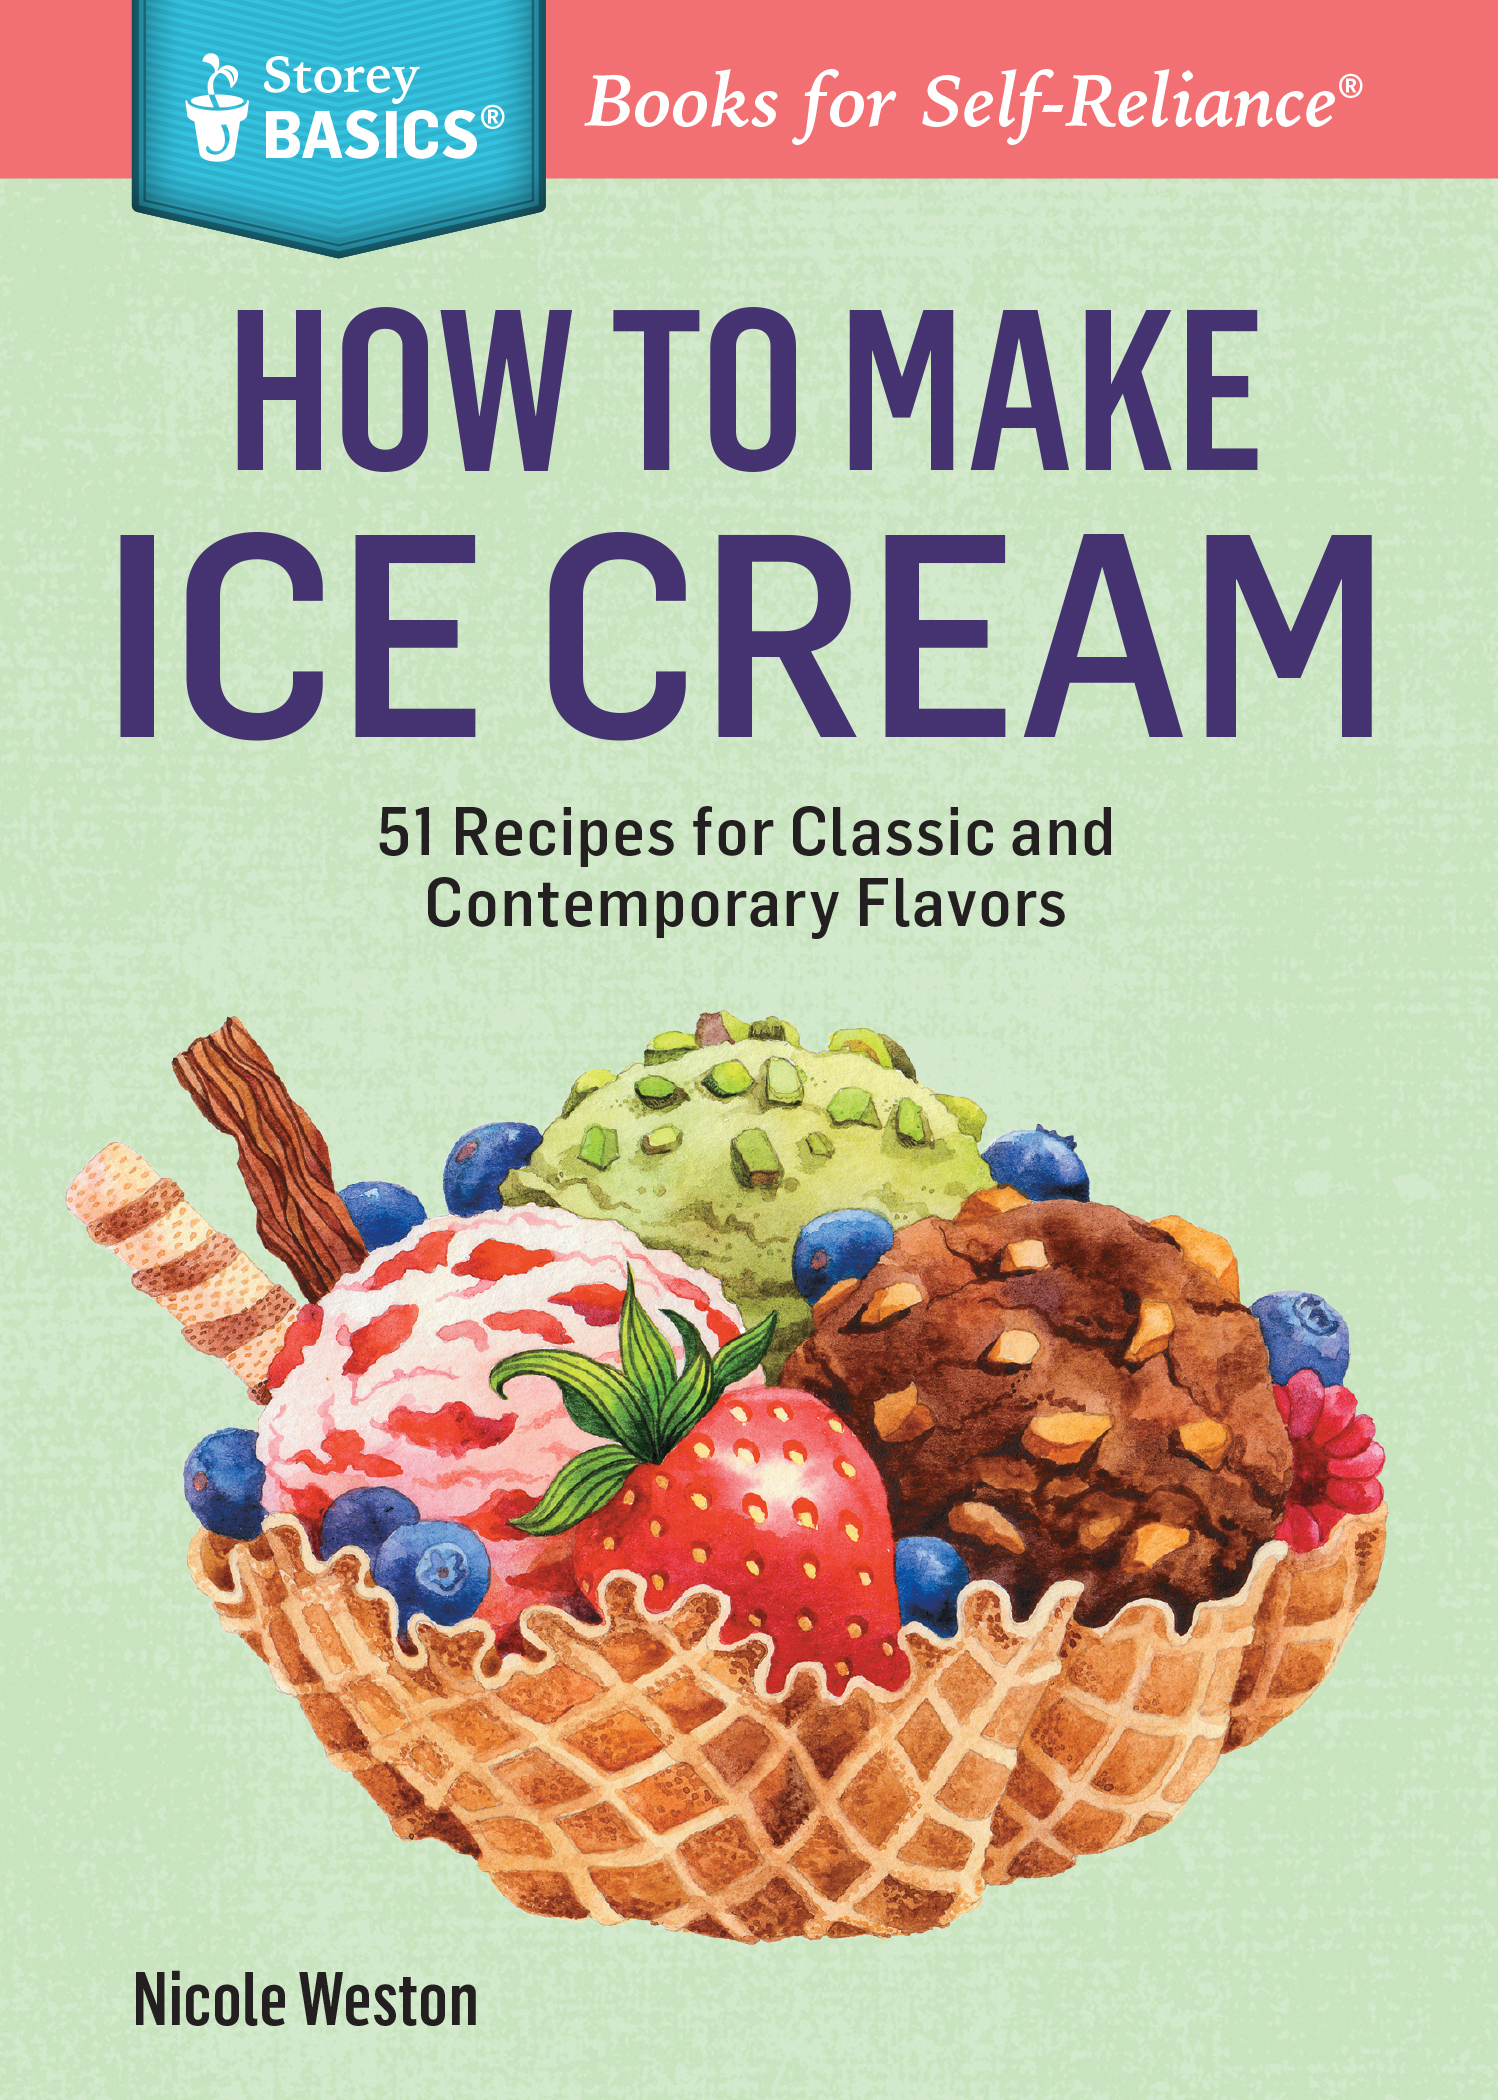 How to Make Ice Cream 51 Recipes for Classic and Contemporary Flavors. A Storey BASICS® Title - Nicole Weston